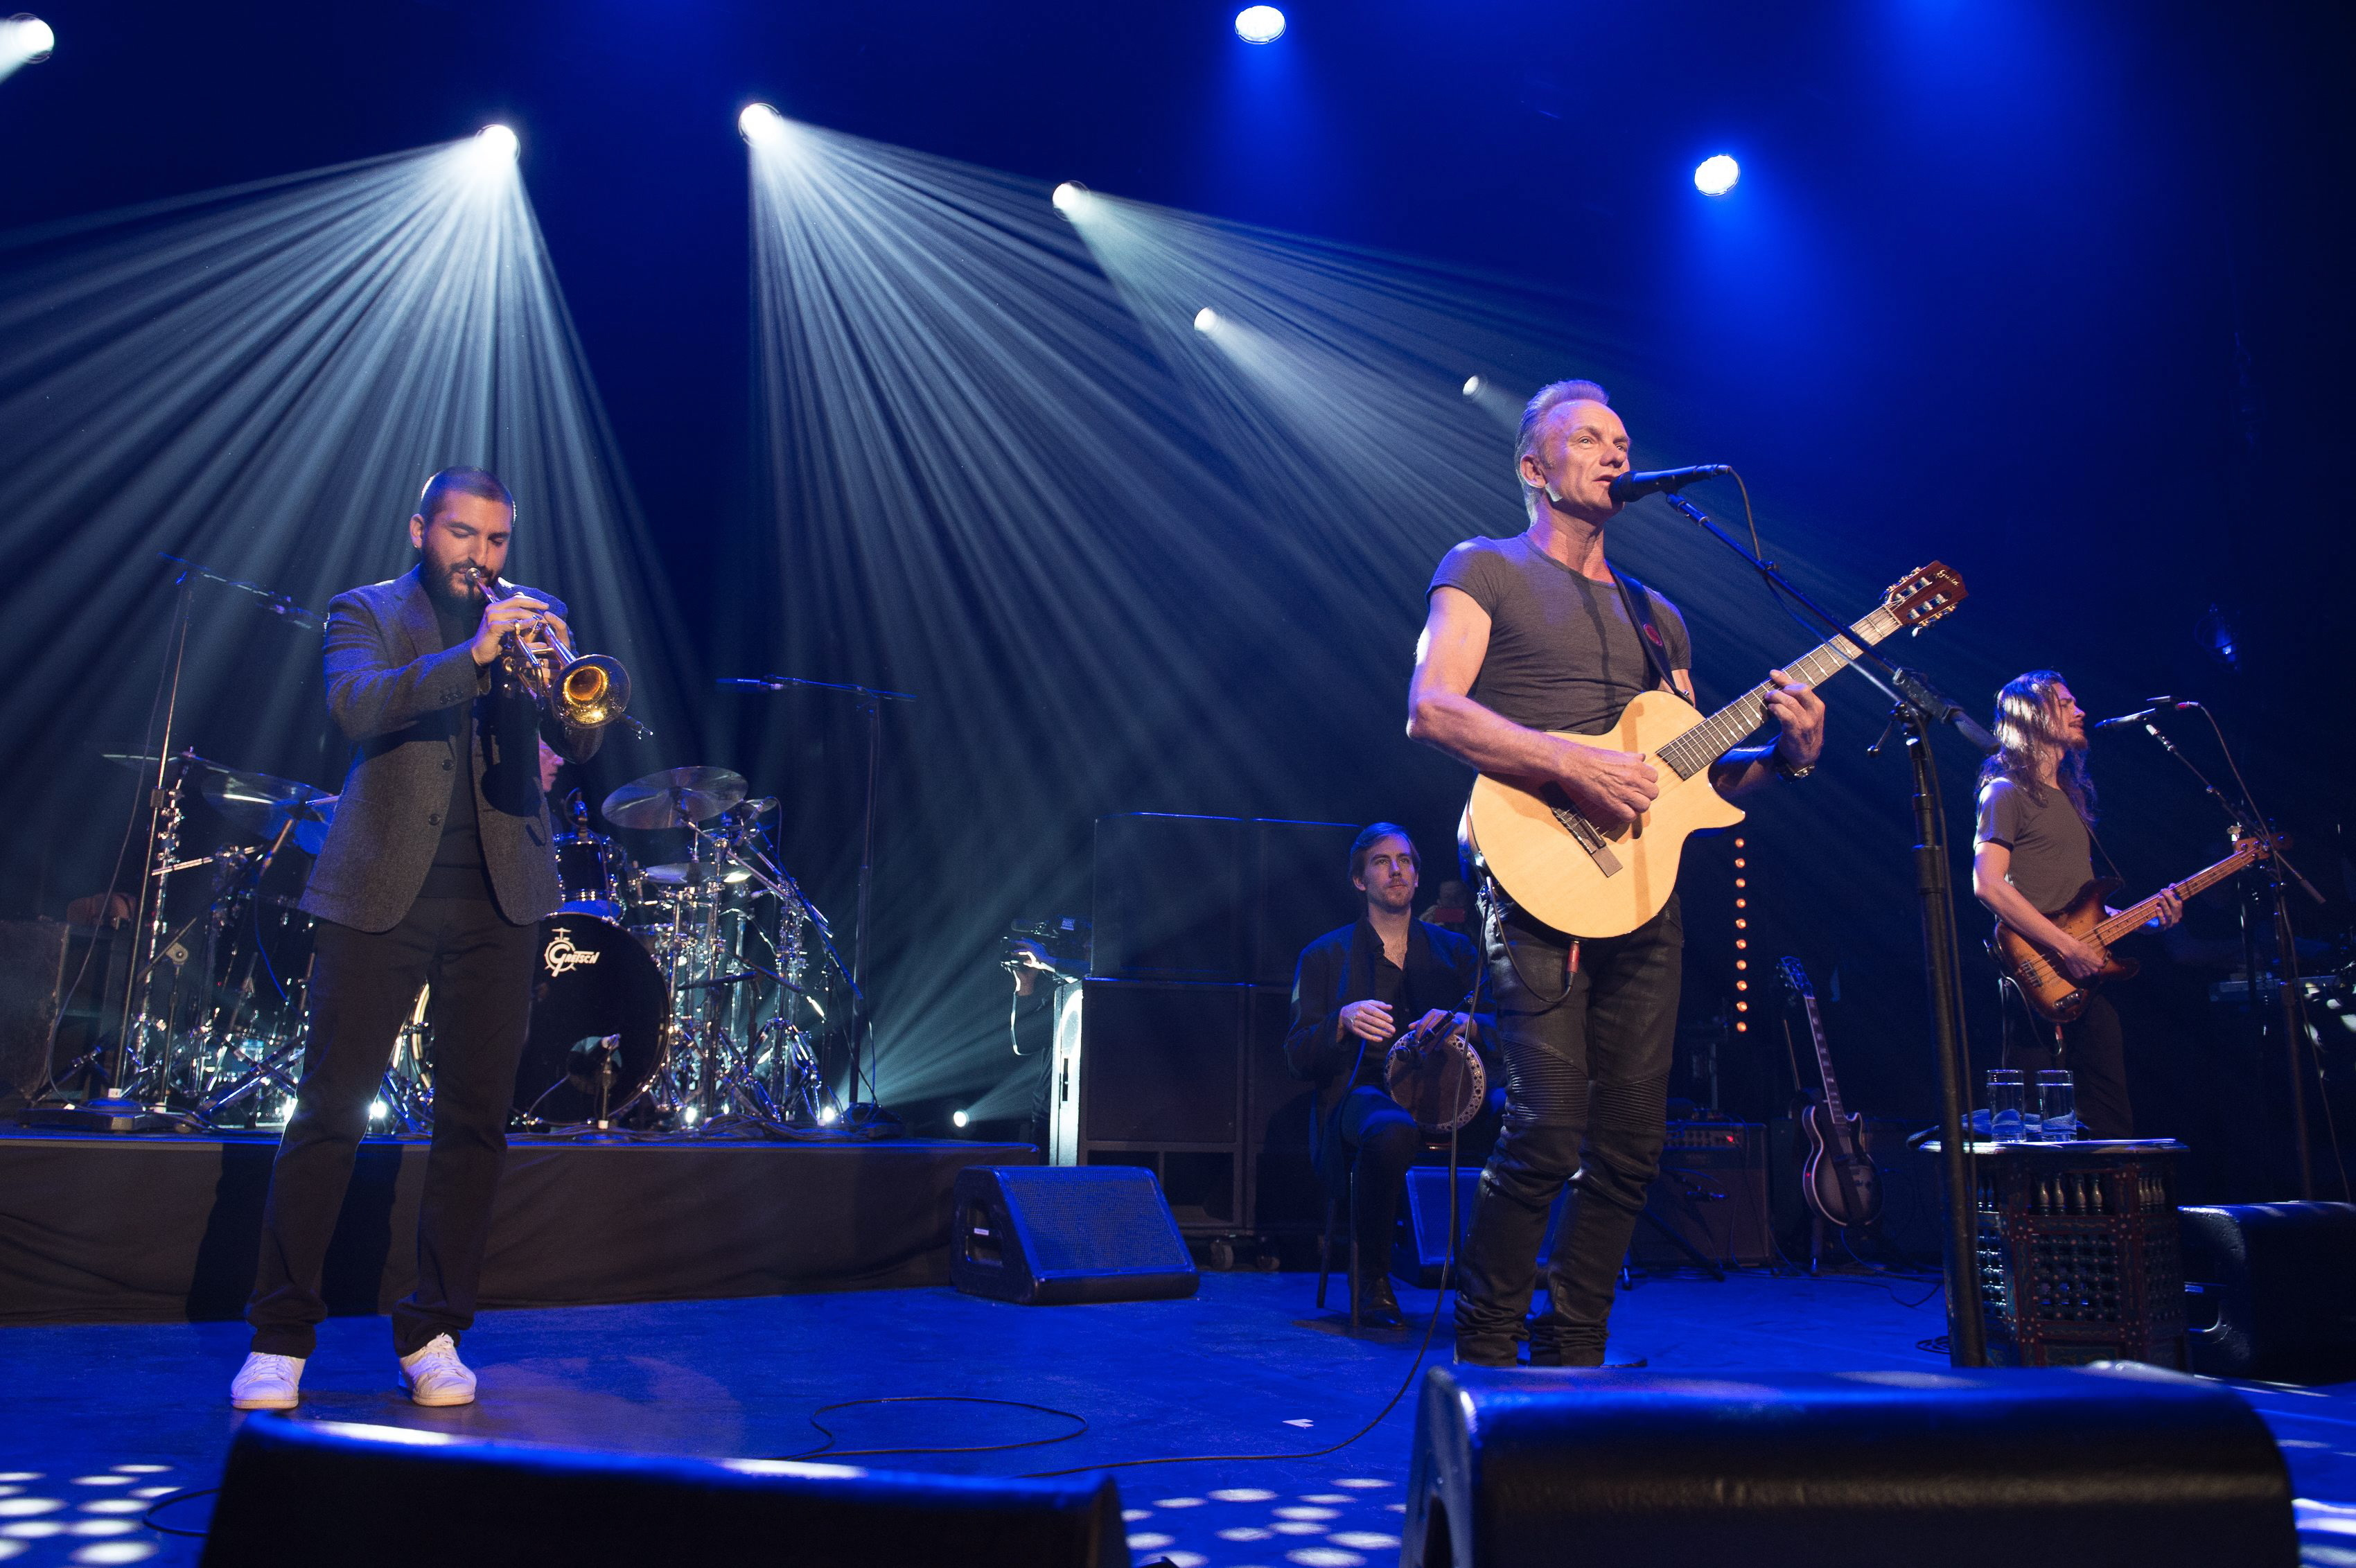 epa05629051 A handout image provided by the Bataclan managment shows British musician Sting (C) during his concert at the new